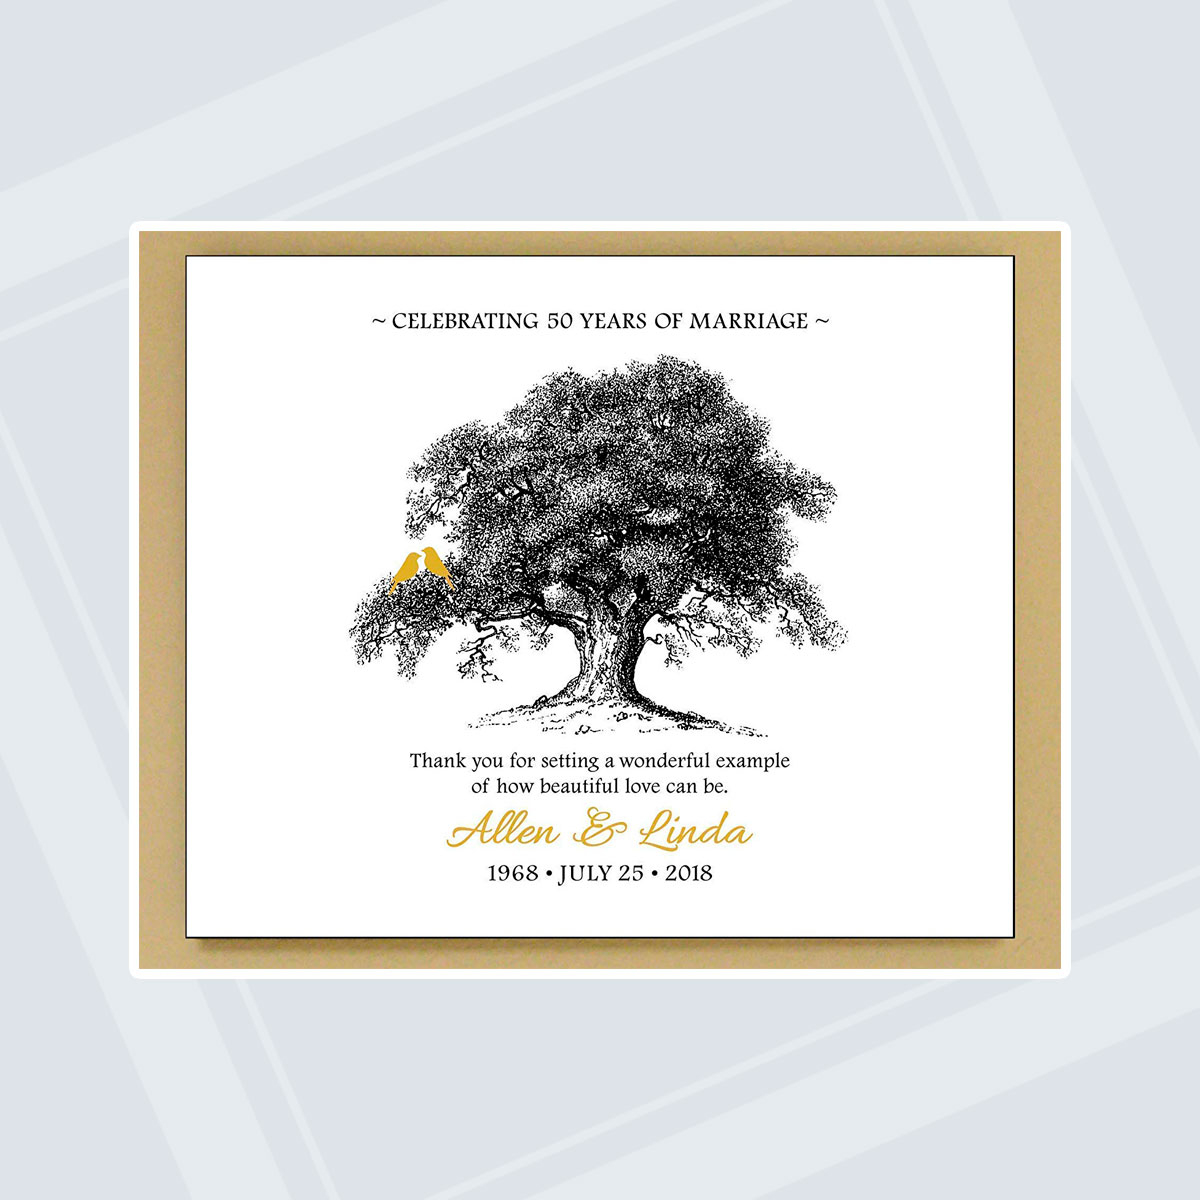 Wedding Anniversary Ideas These 50th Wedding Anniversary Gifts Will Stand The Test Of Time